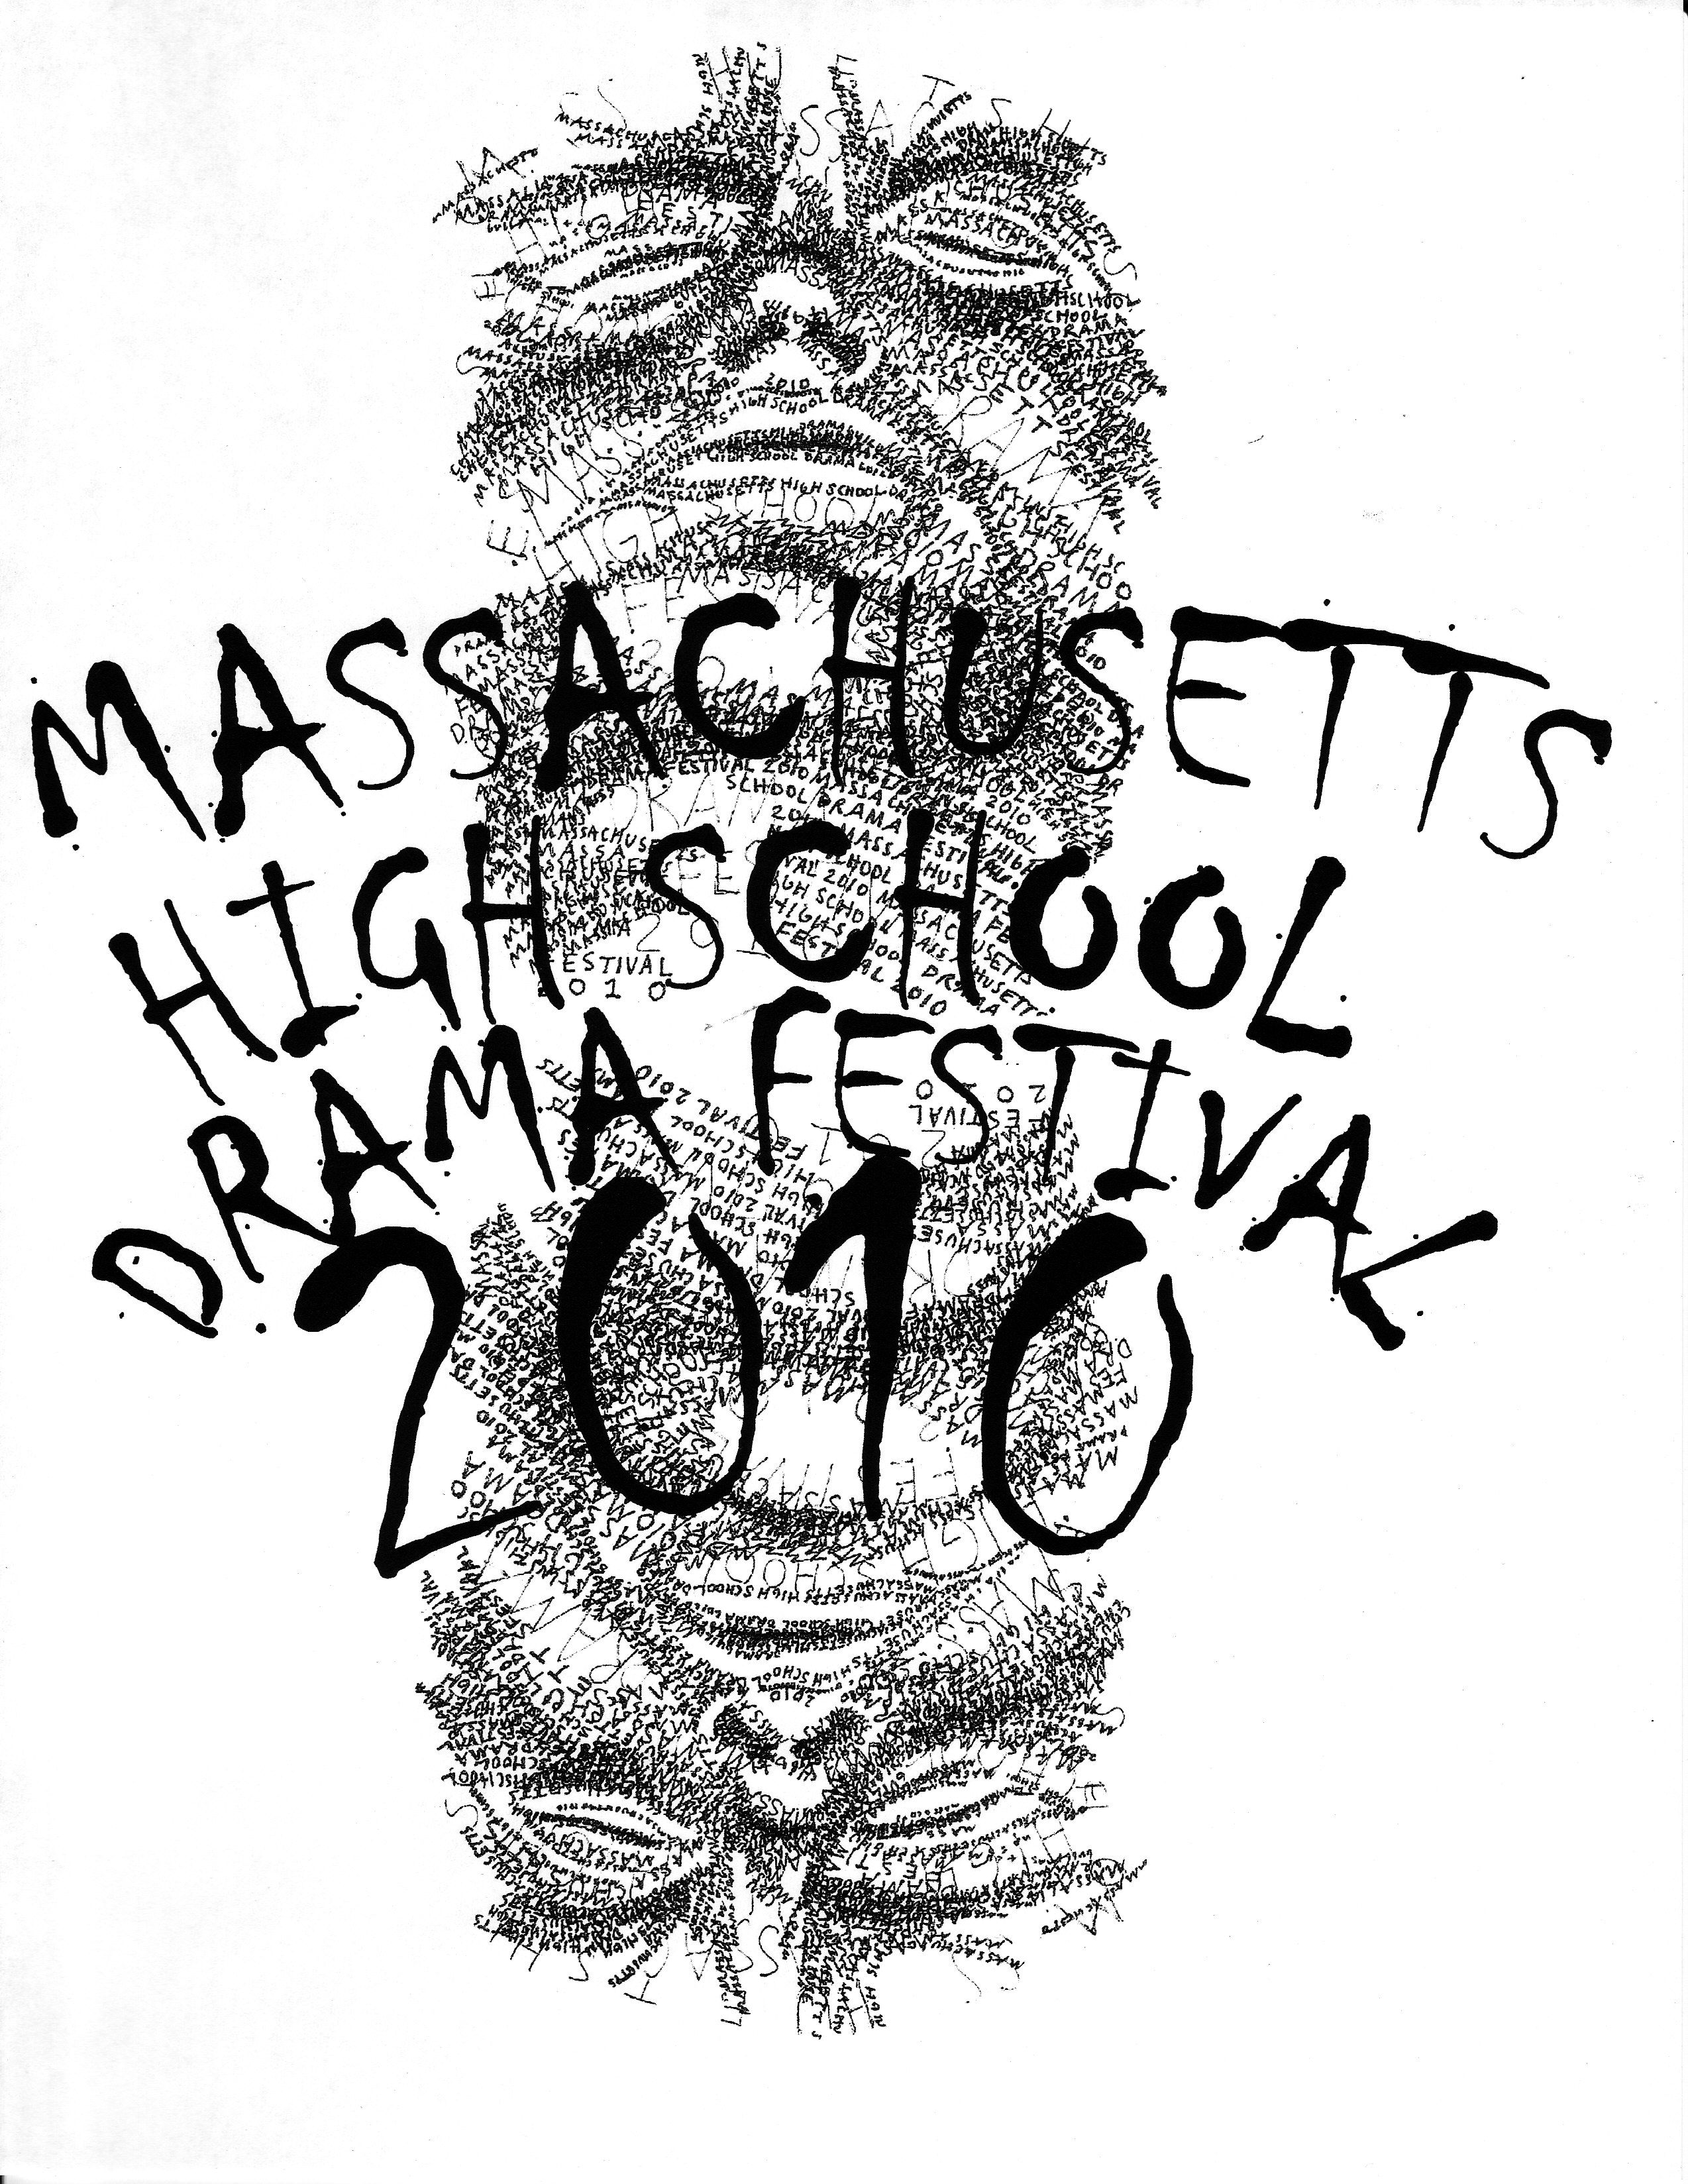 Massachusetts High School Drama Guild Inc